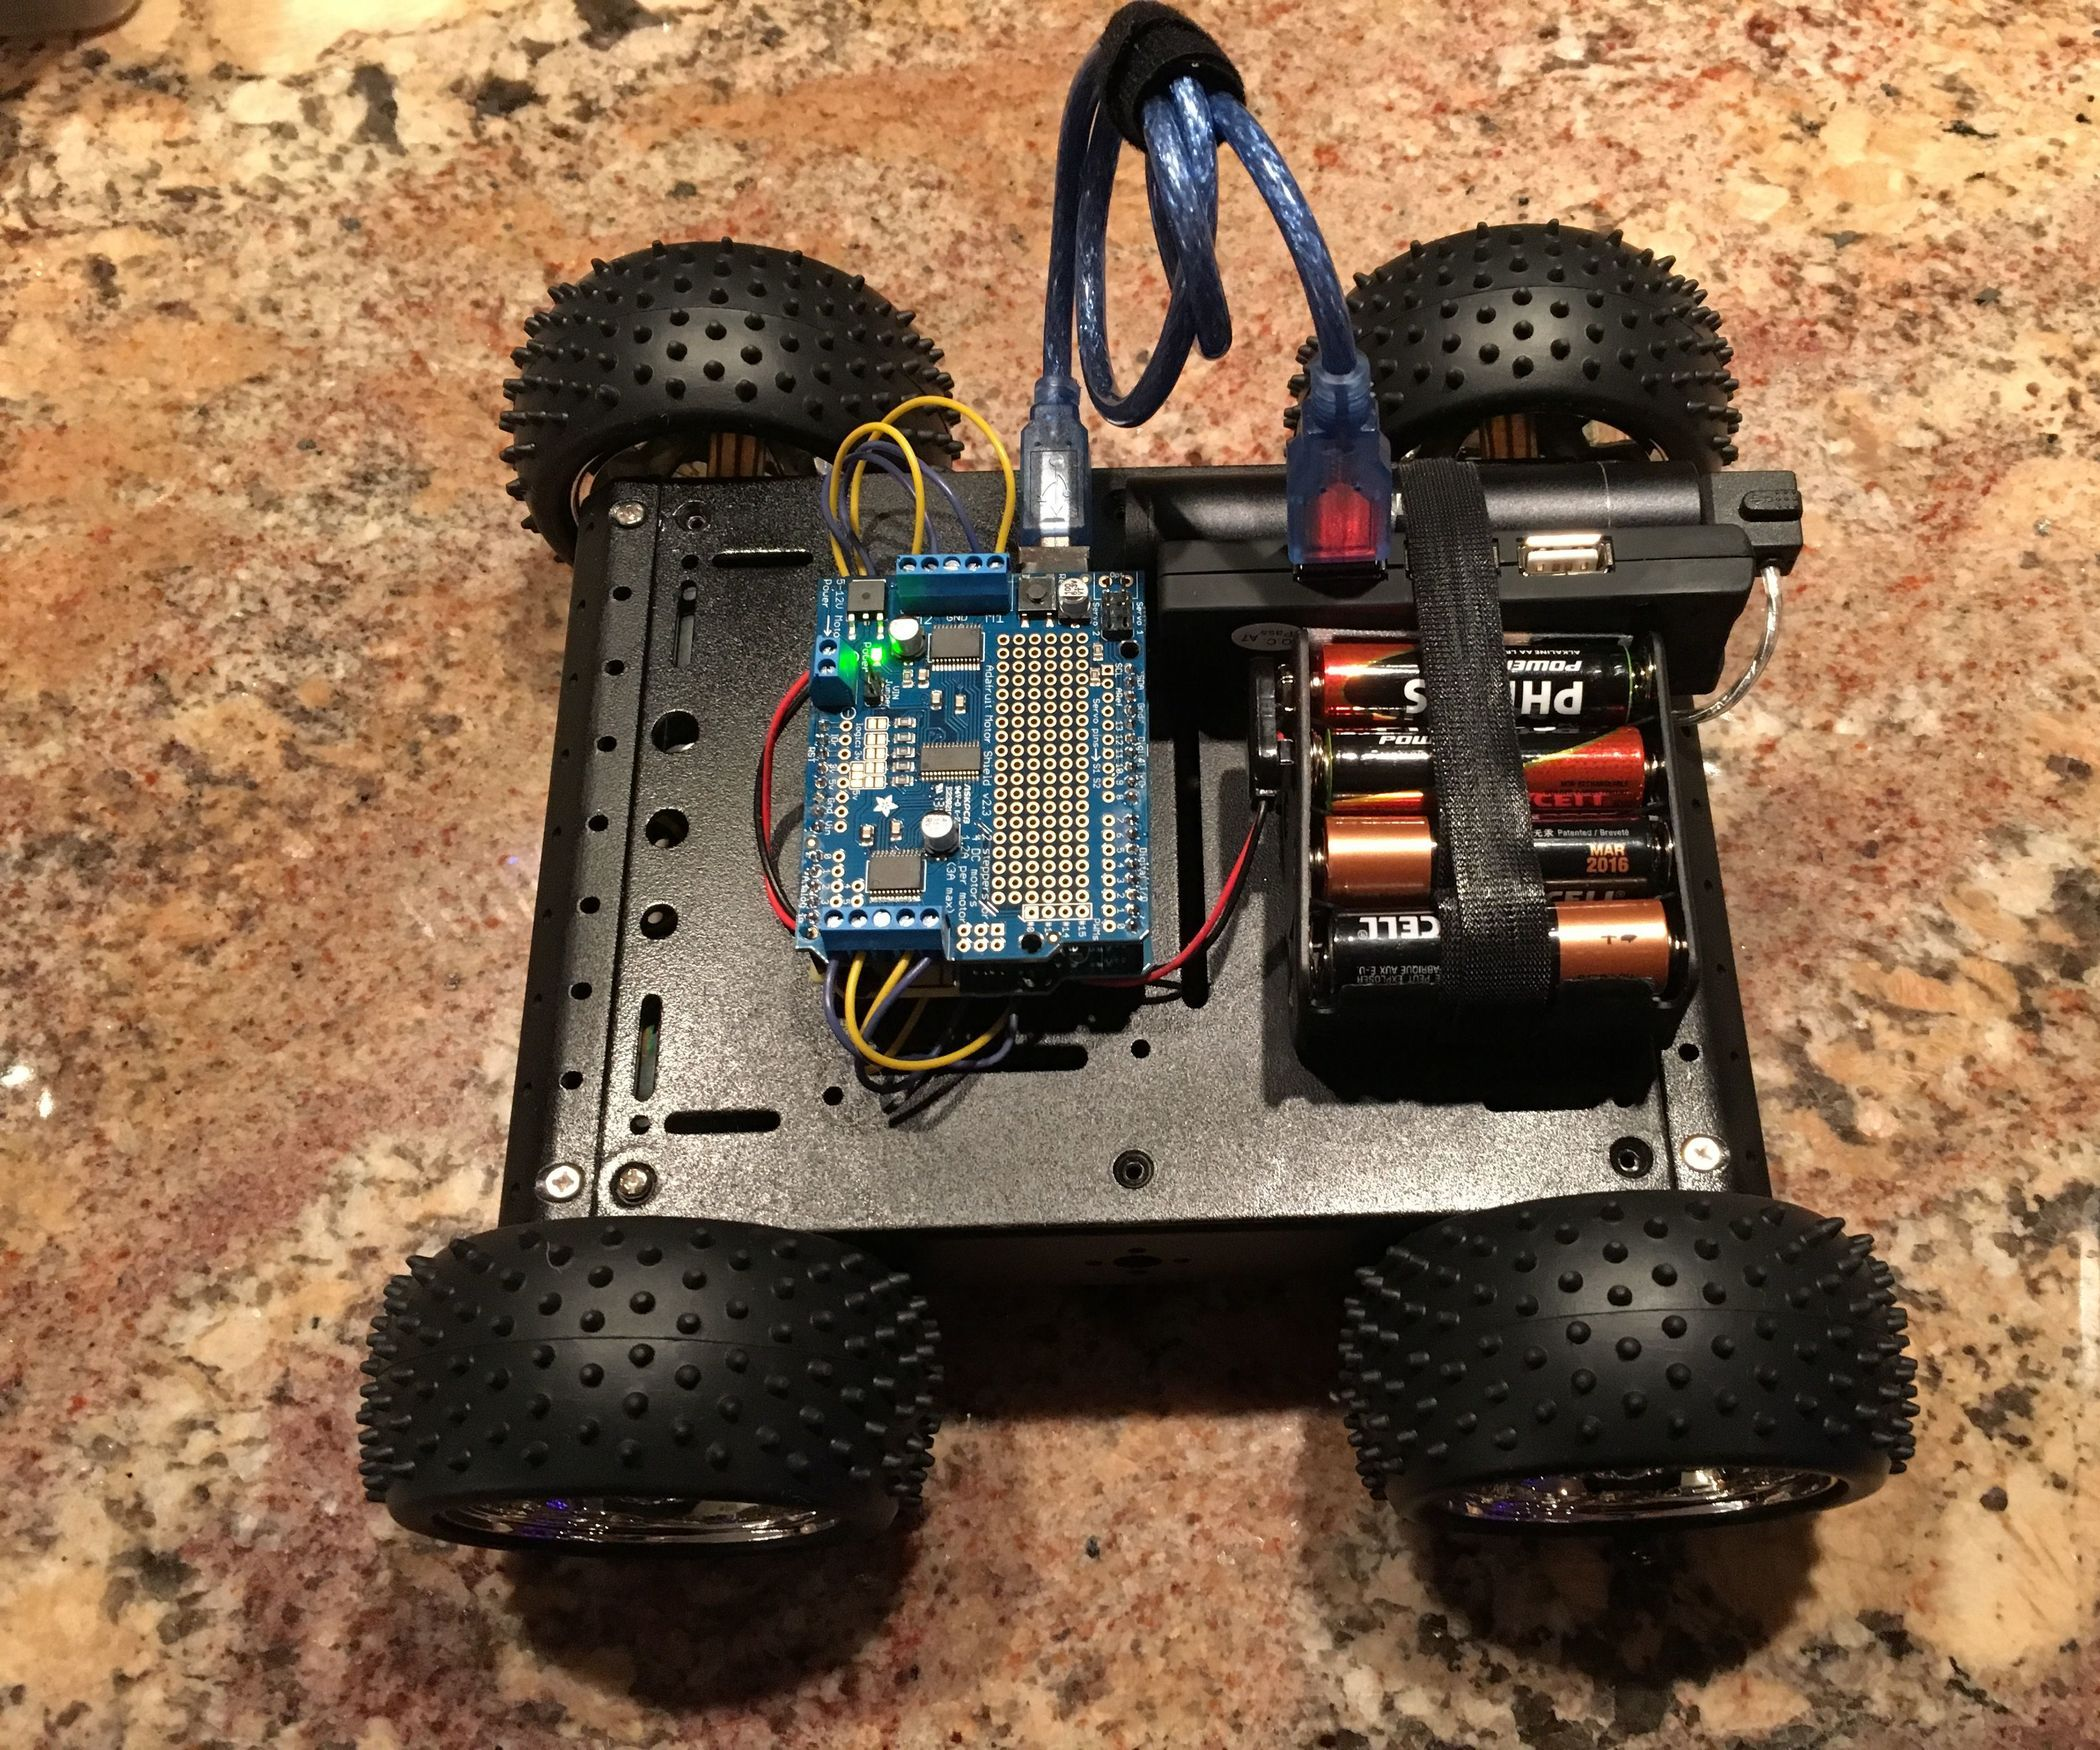 Robot Rover IPhone Controlled Using Blynk Joystick